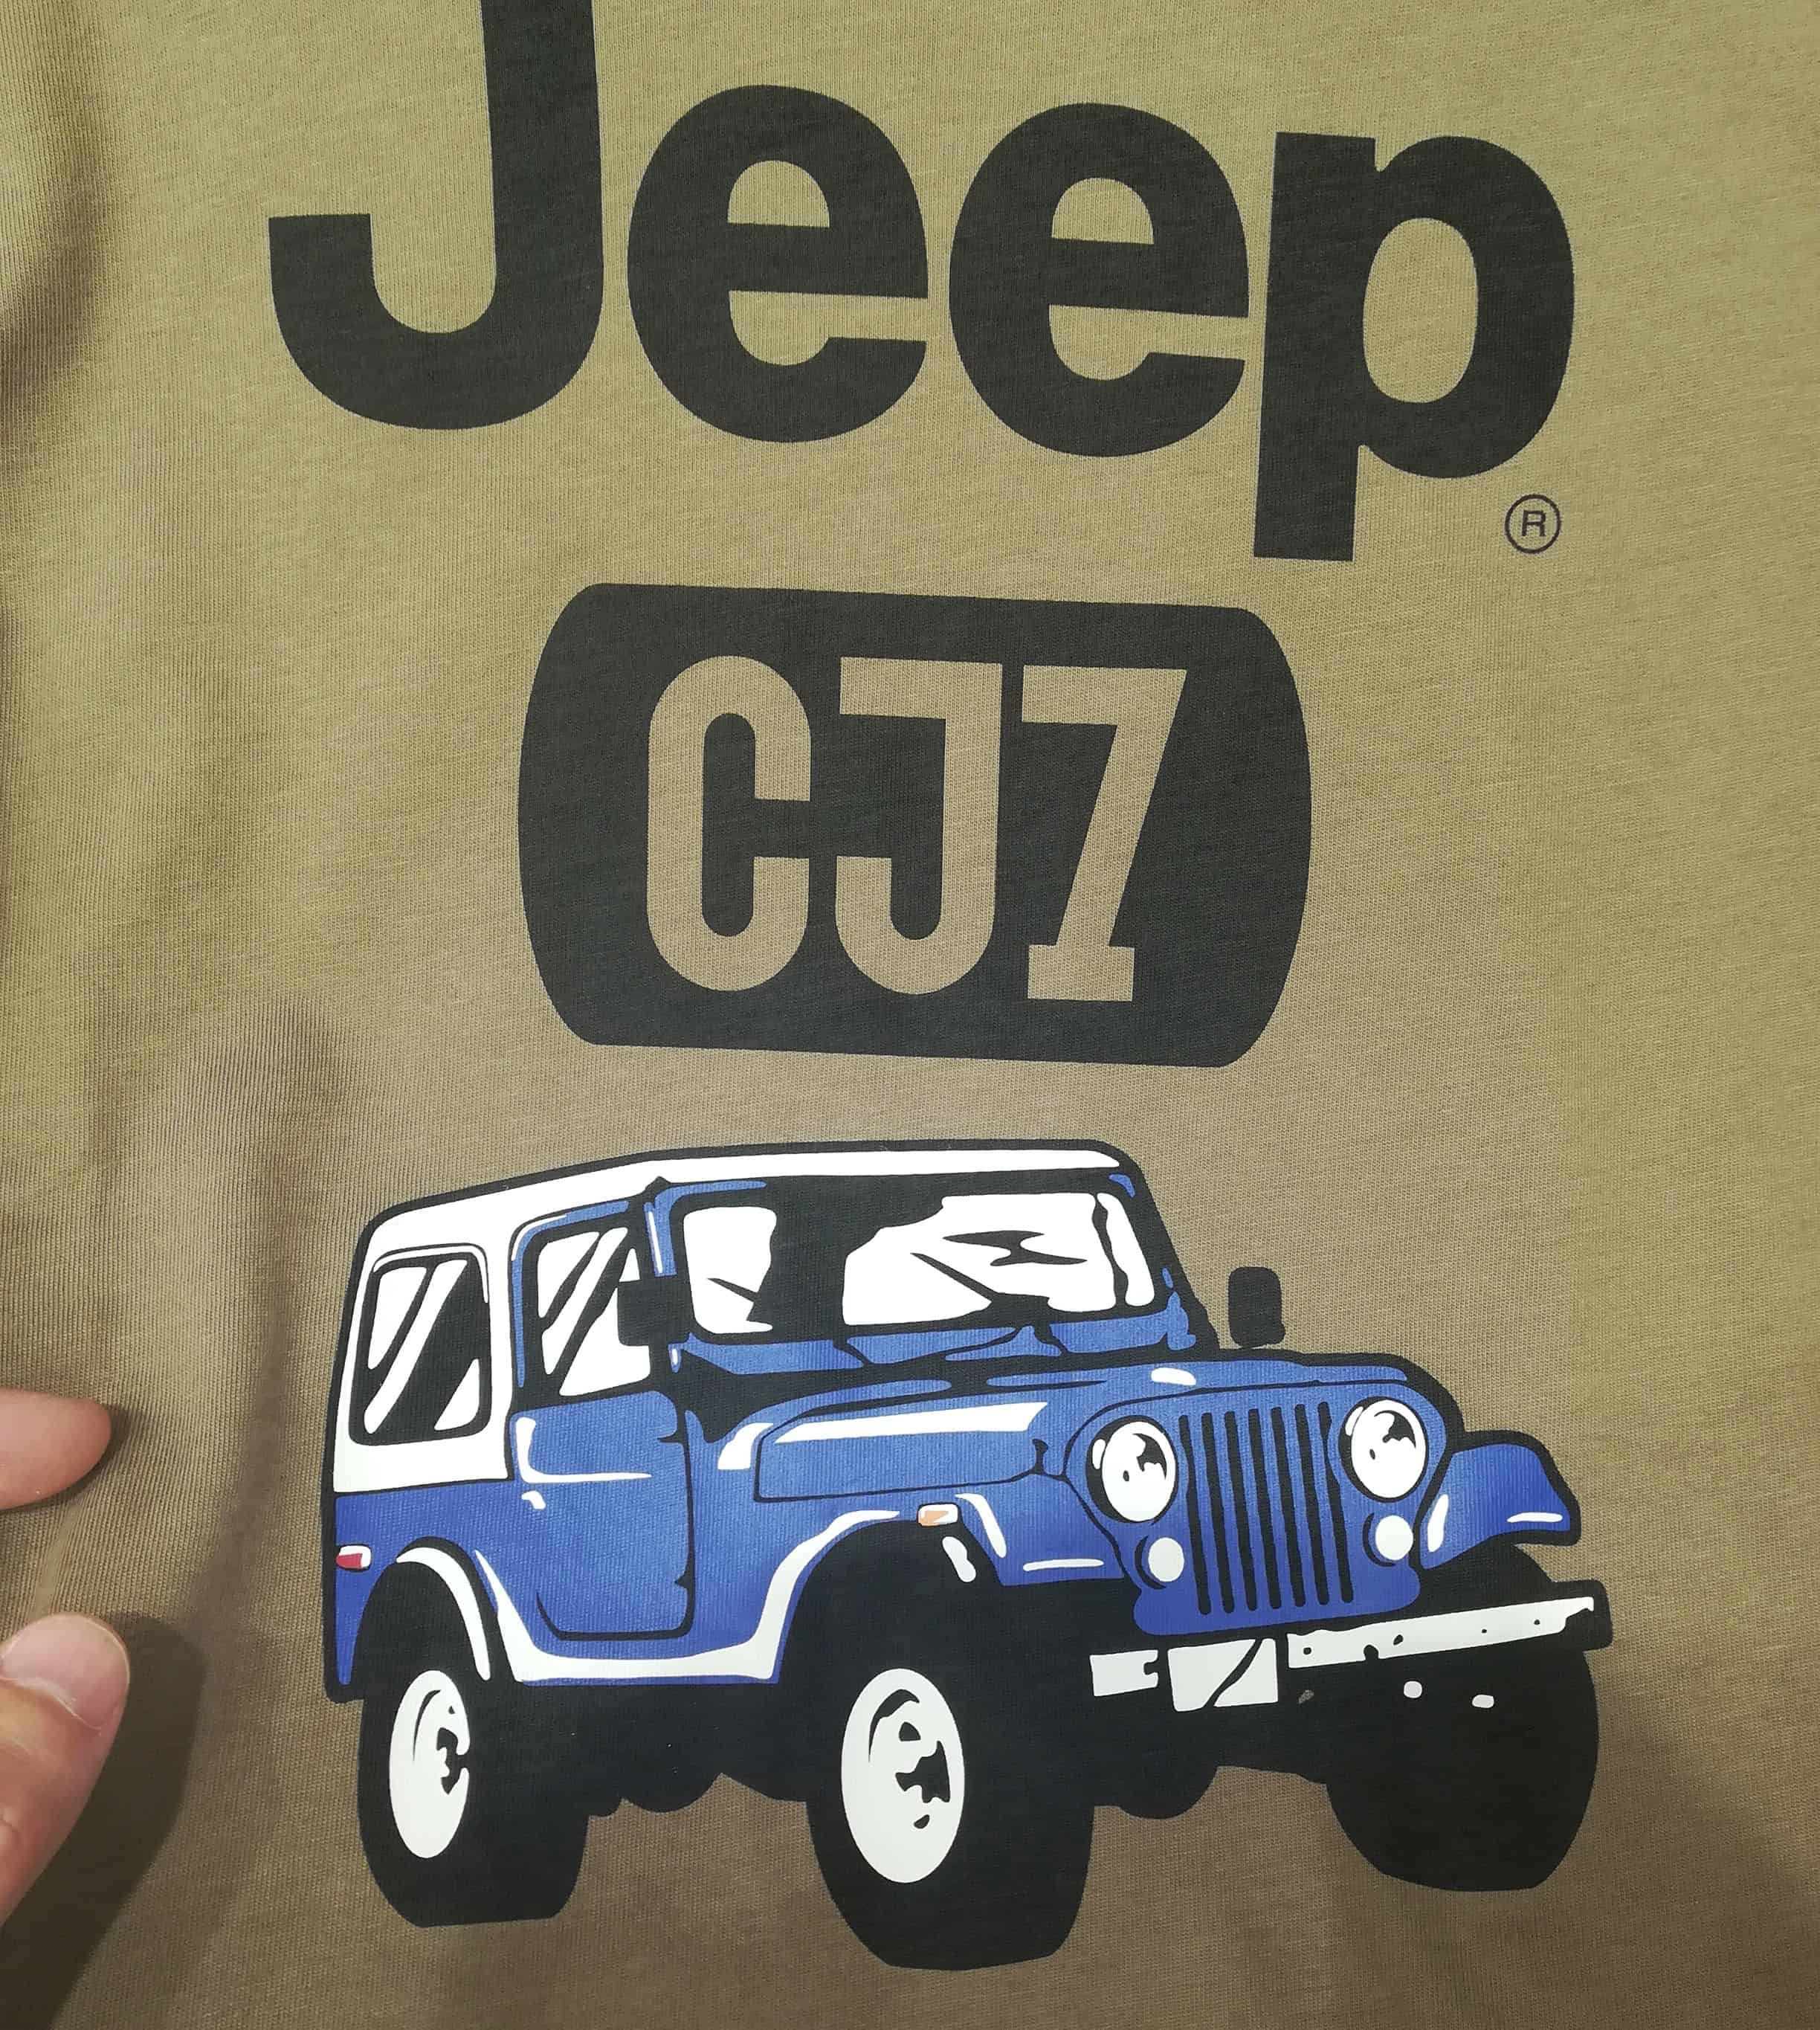 A cool Jeep T-shirt I got from UNIQLO in Japan.